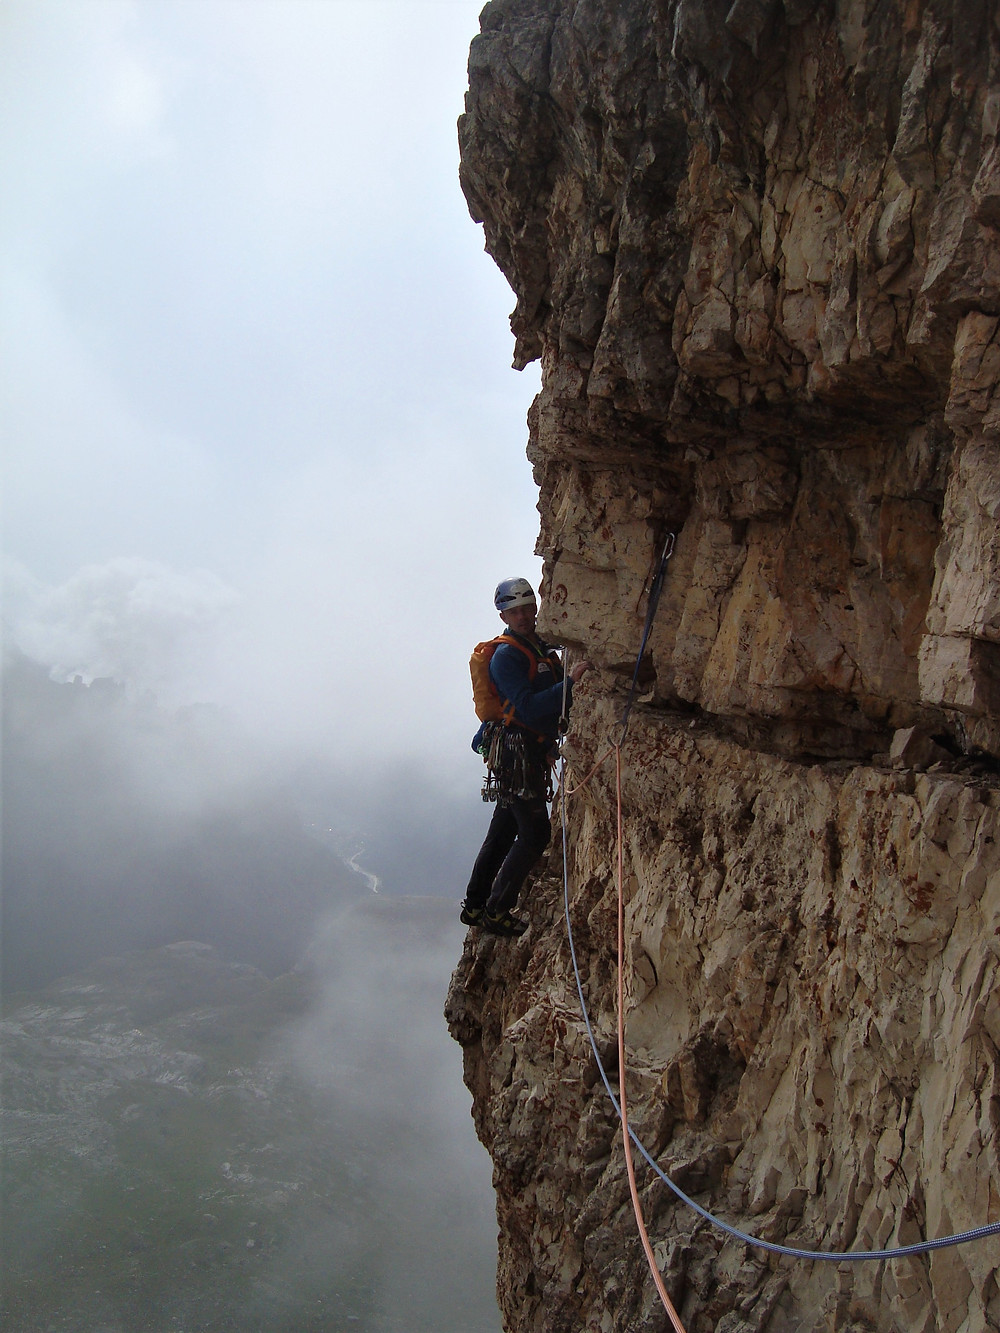 A pant wetting traverse